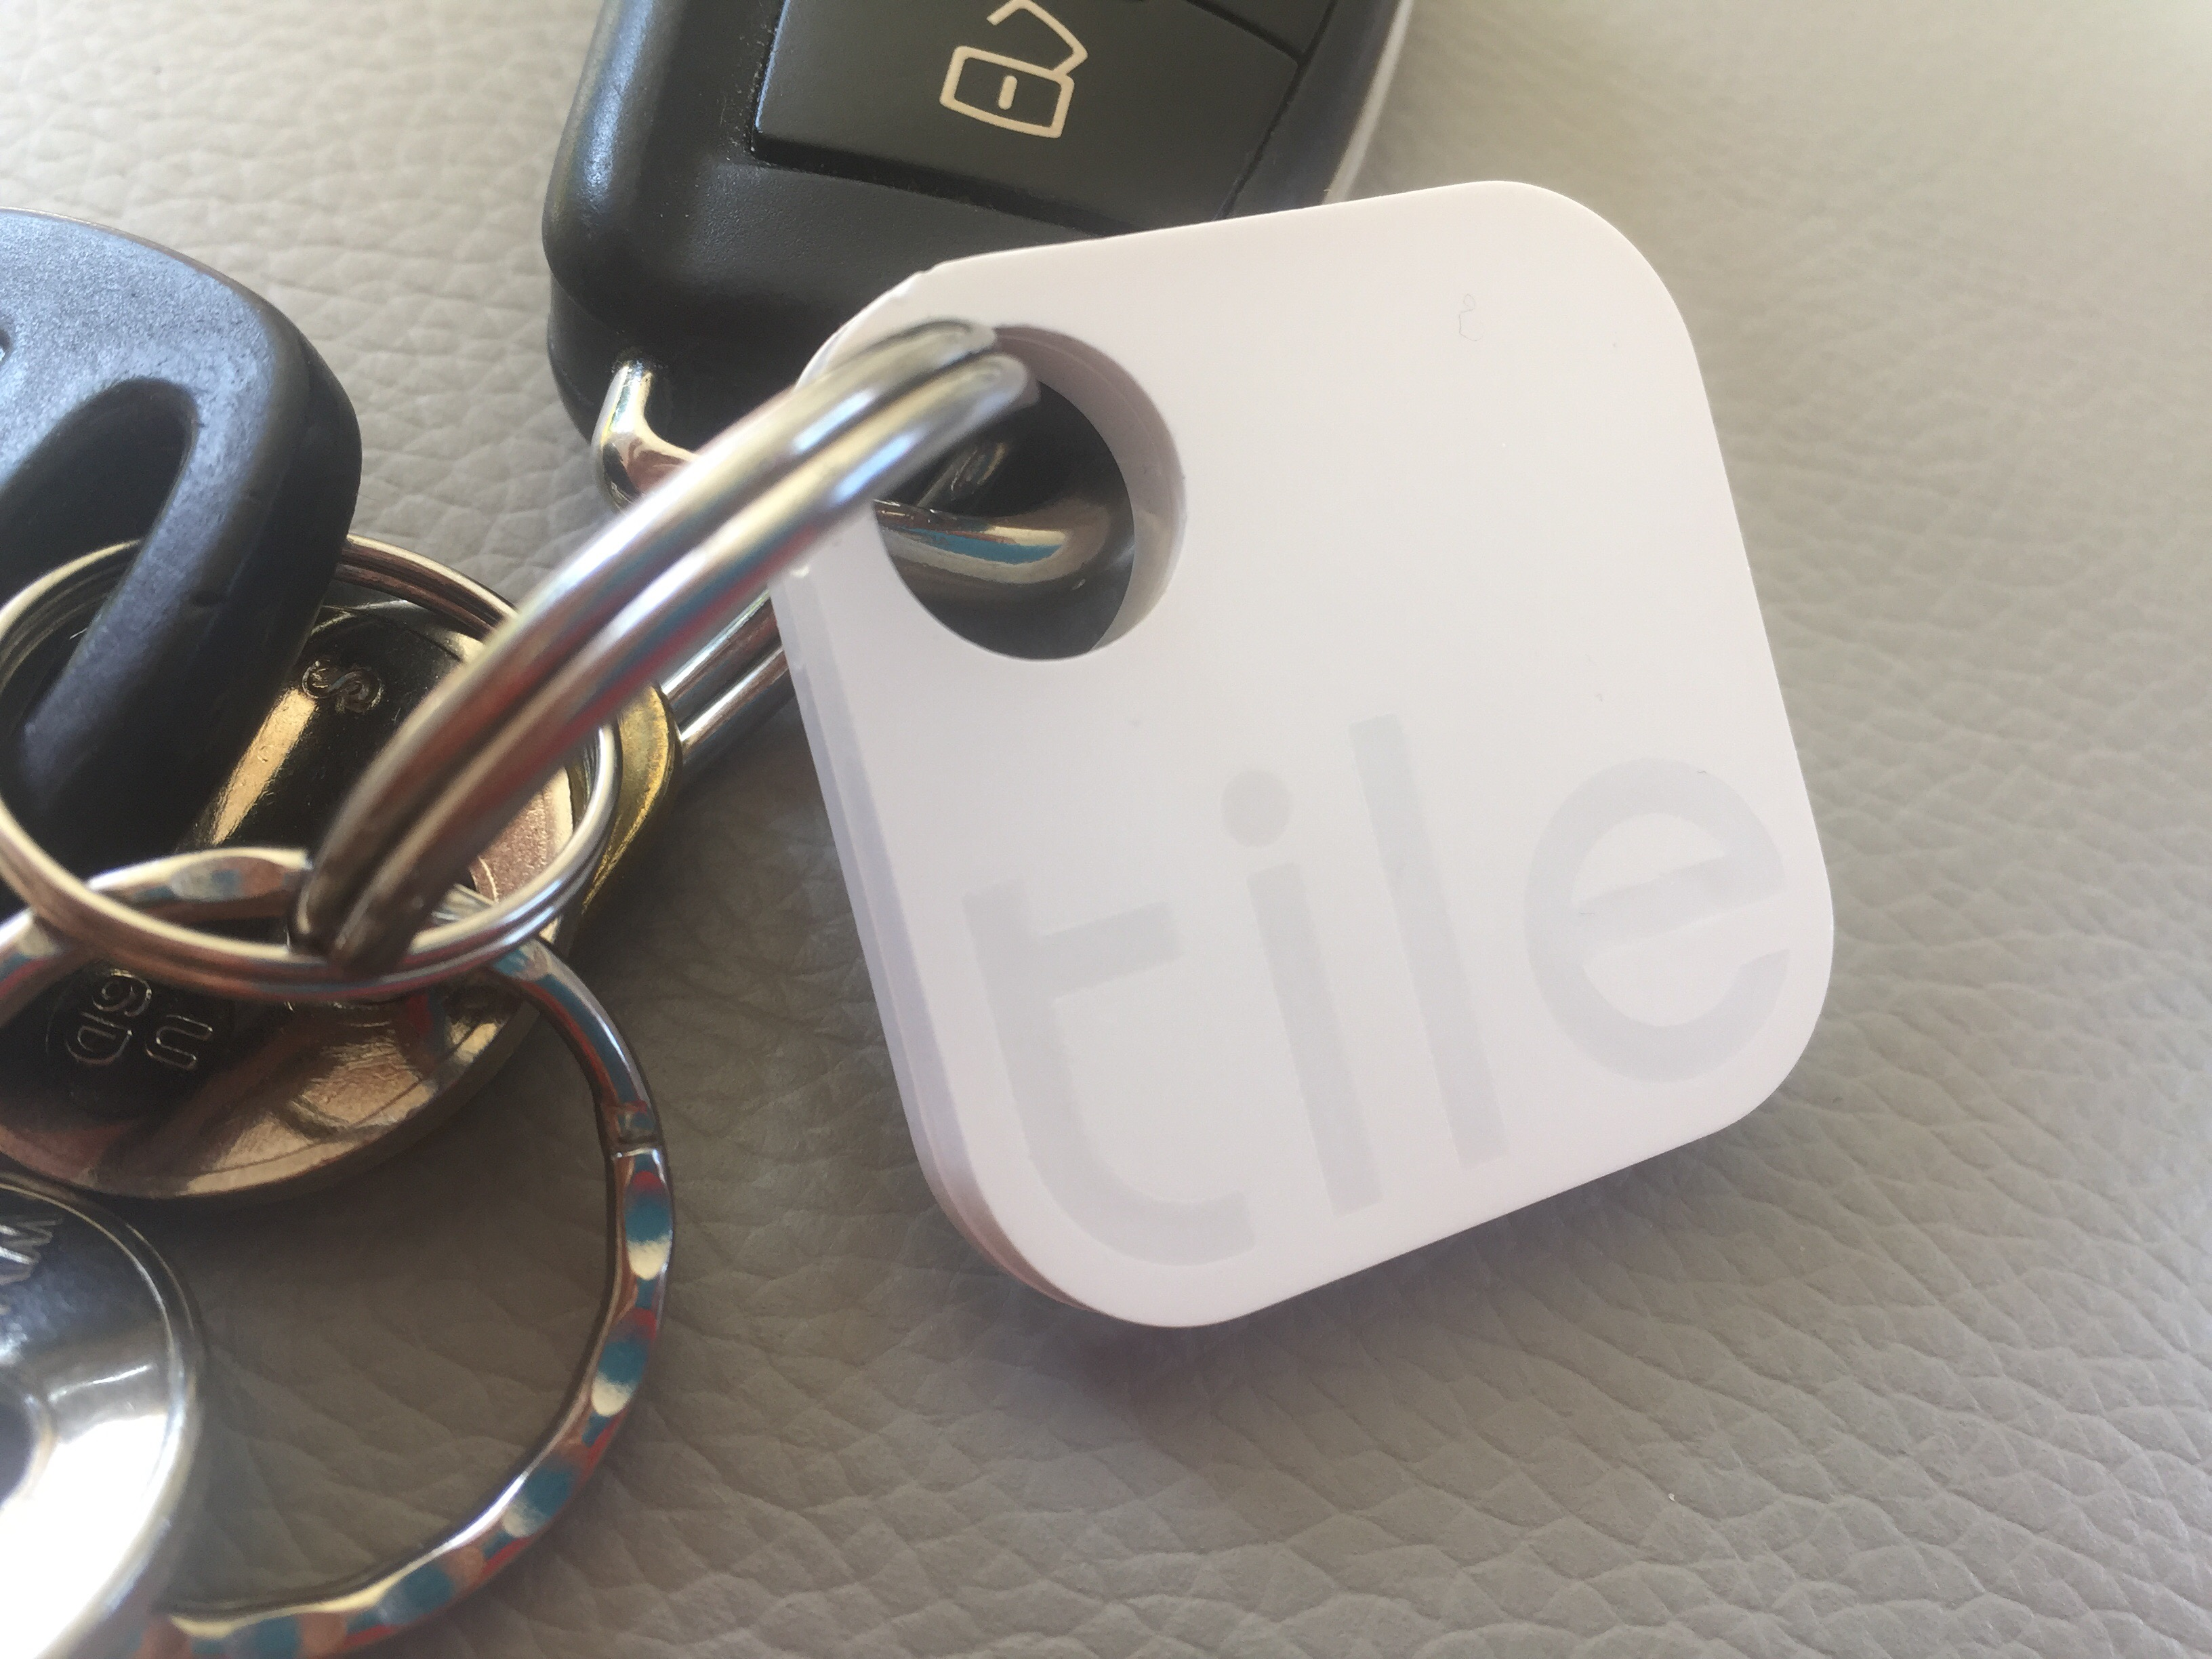 Find your keys using a tile and stay at the park hyatt in mallorca this stylish white tile slips on your key ring and uses bluetooth to connect to your phone lose your keys and locate using your phone ppazfo